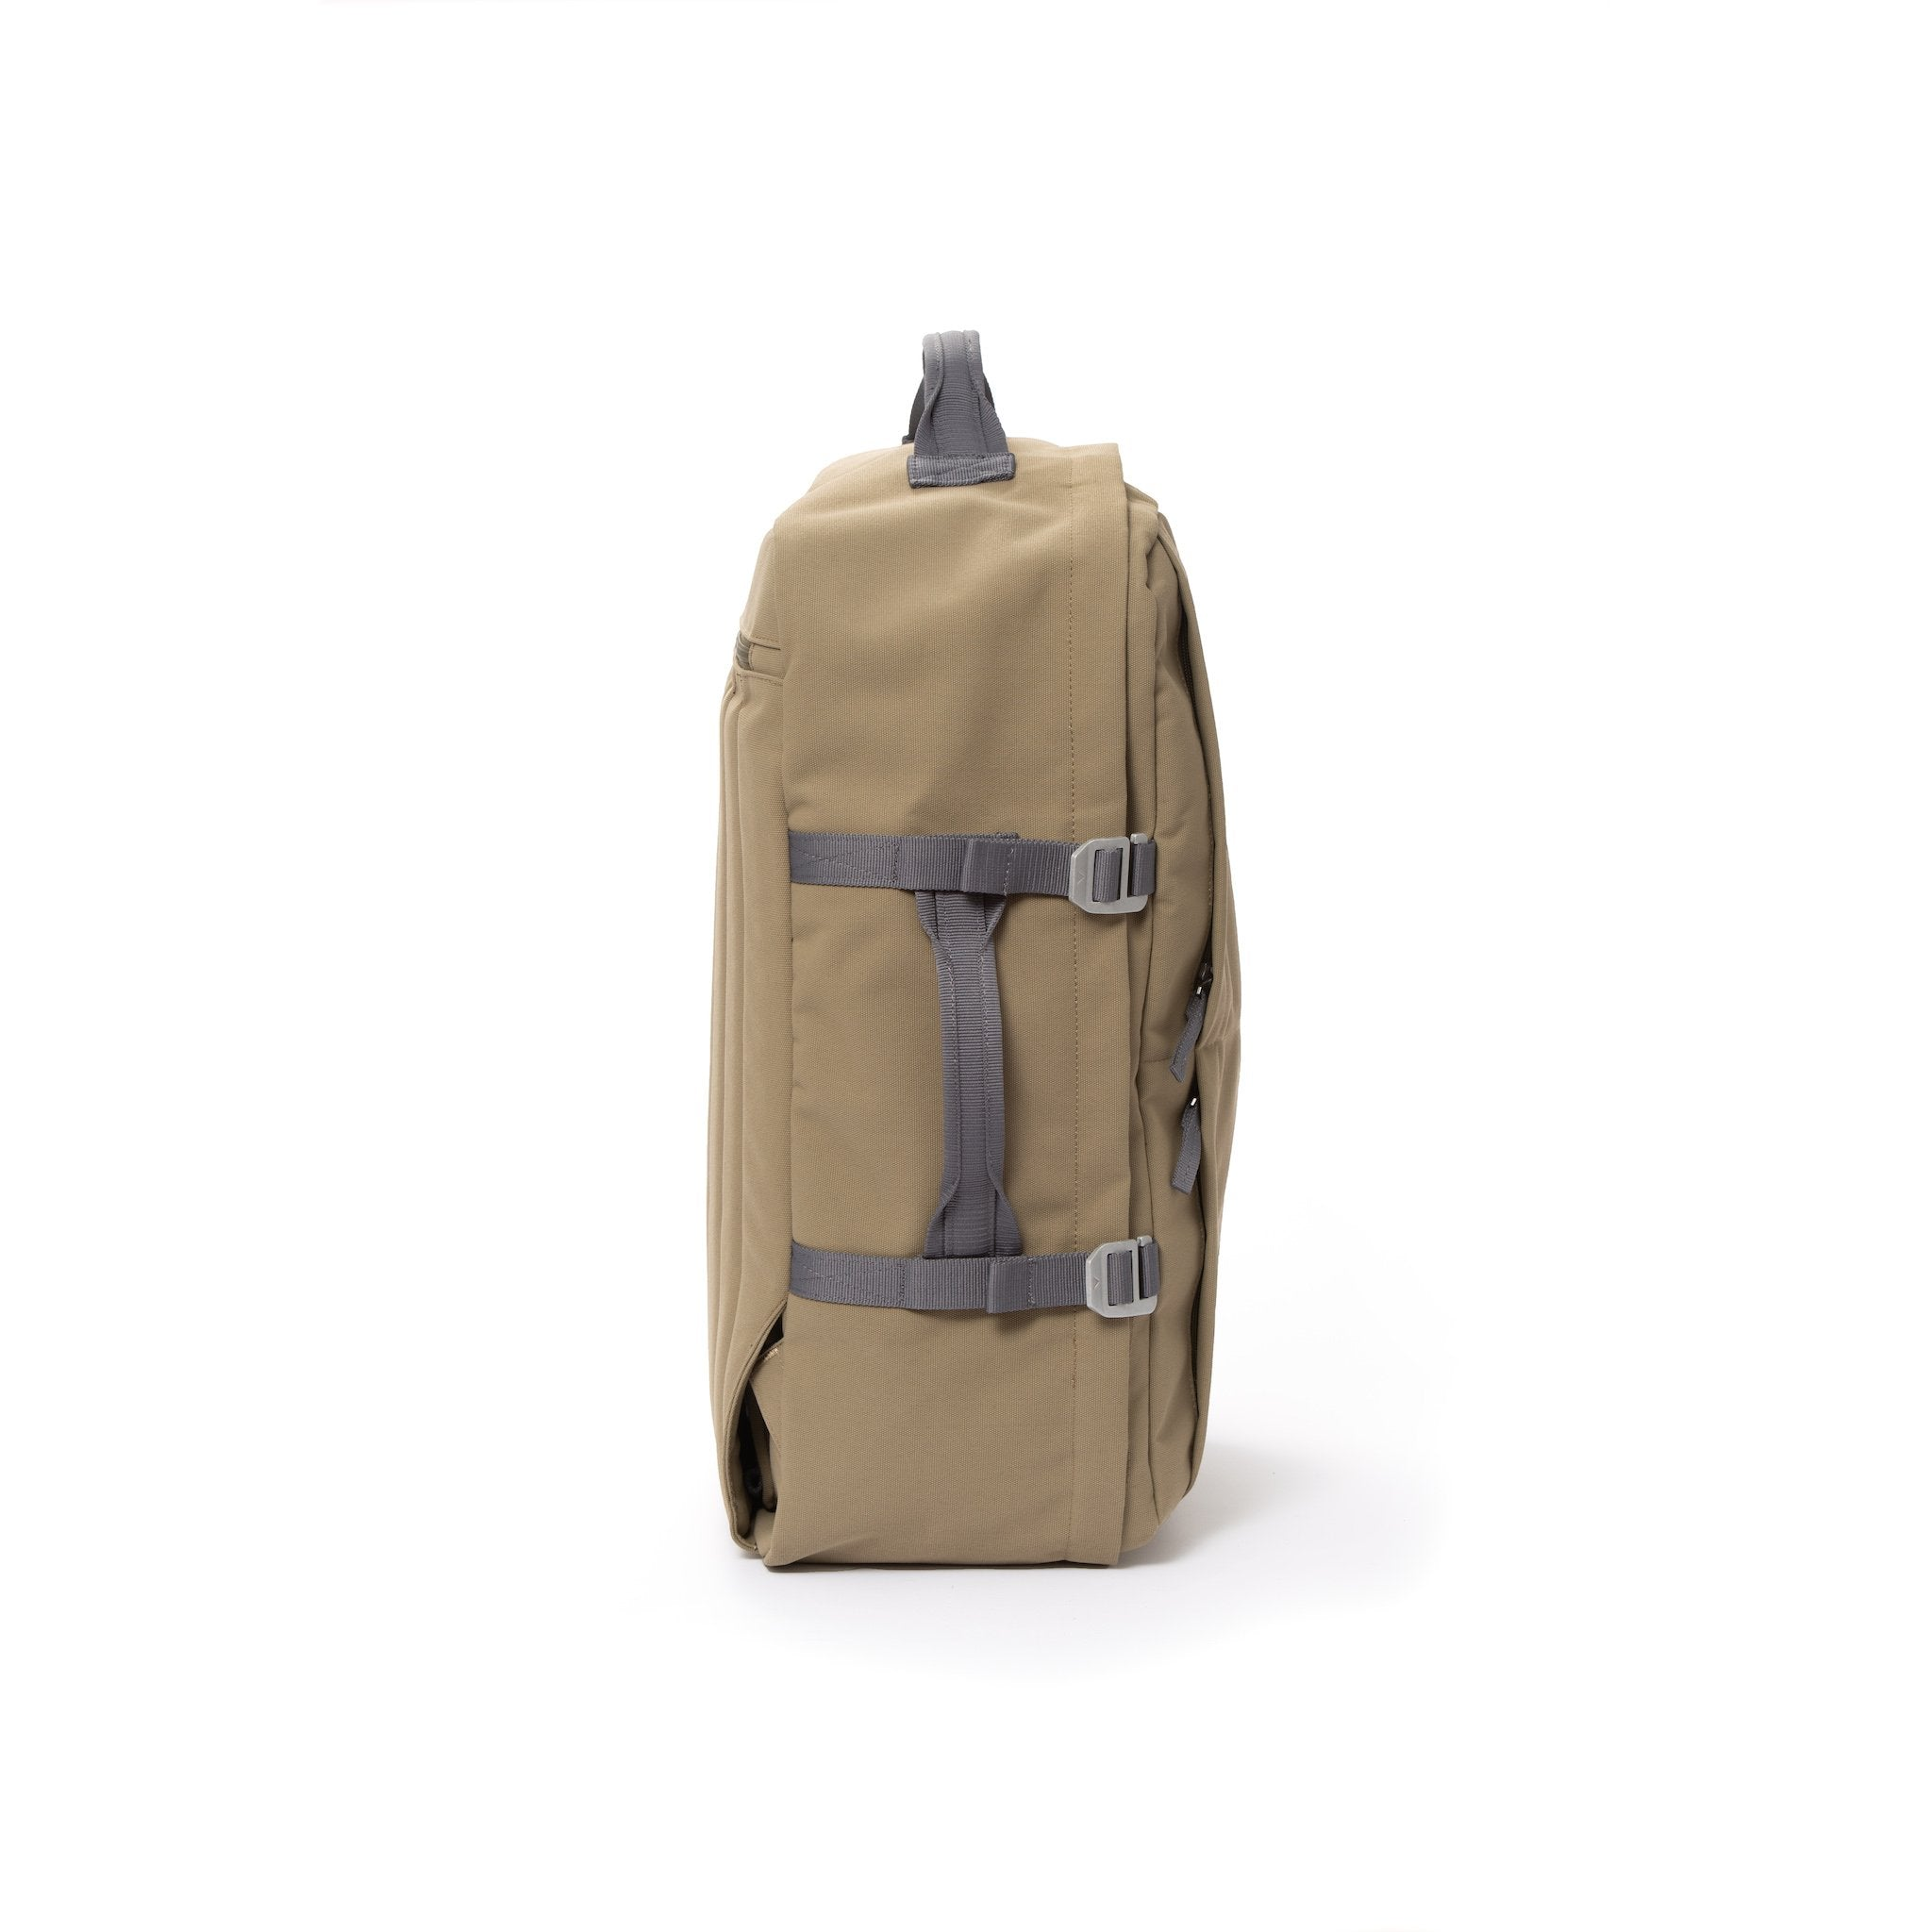 Khaki recycled canvas travel backpack with compression side straps.